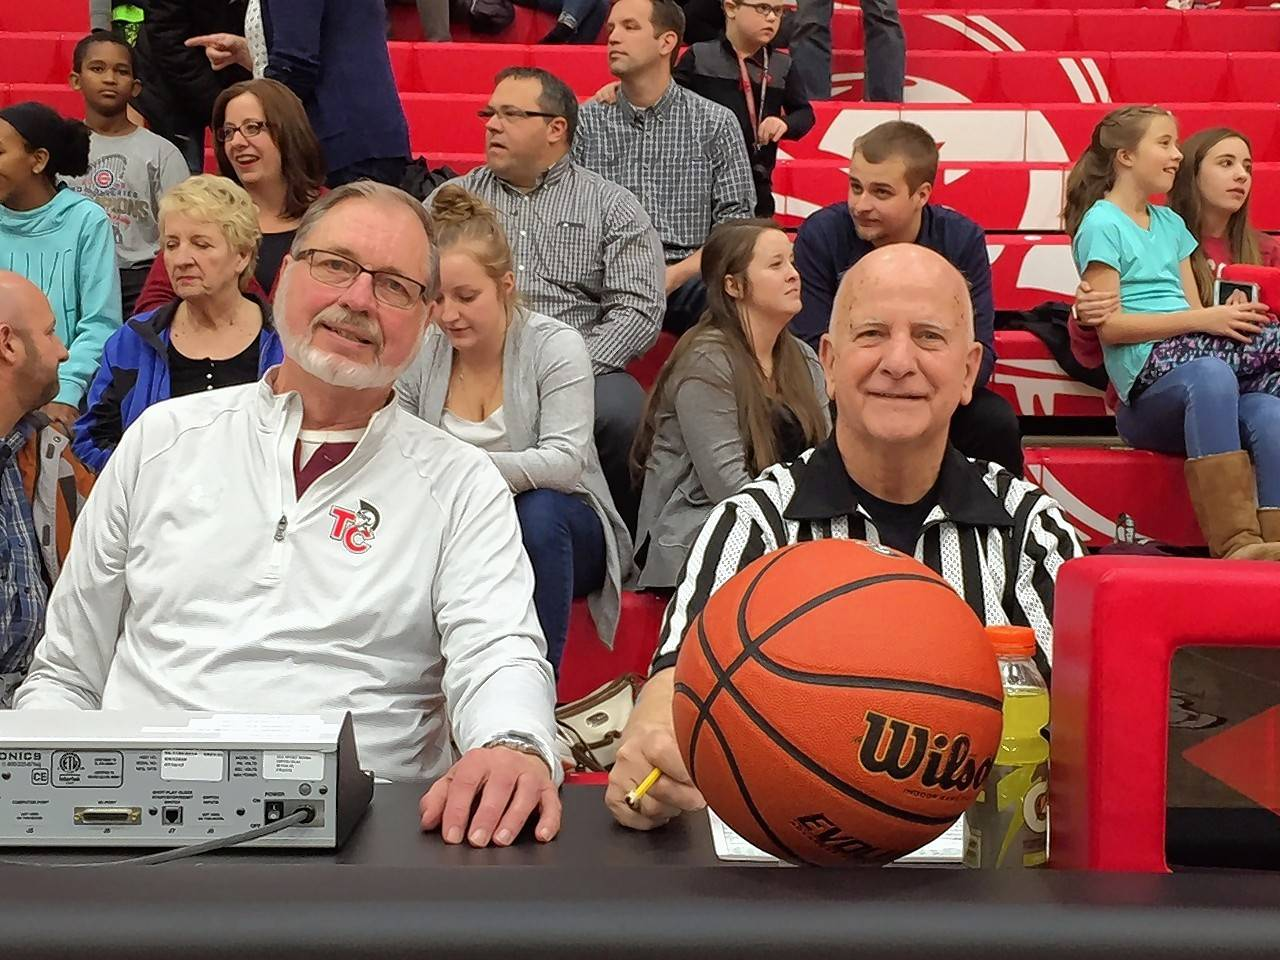 Partners at Timothy Christian's basketball scorer's table for 50 years and friends since kindergarten, Ken Huizinga (left) and George Bosman were honored for their achievement at the Elmhurst school before Tuesday's boys basketball game against Wheaton Academy.